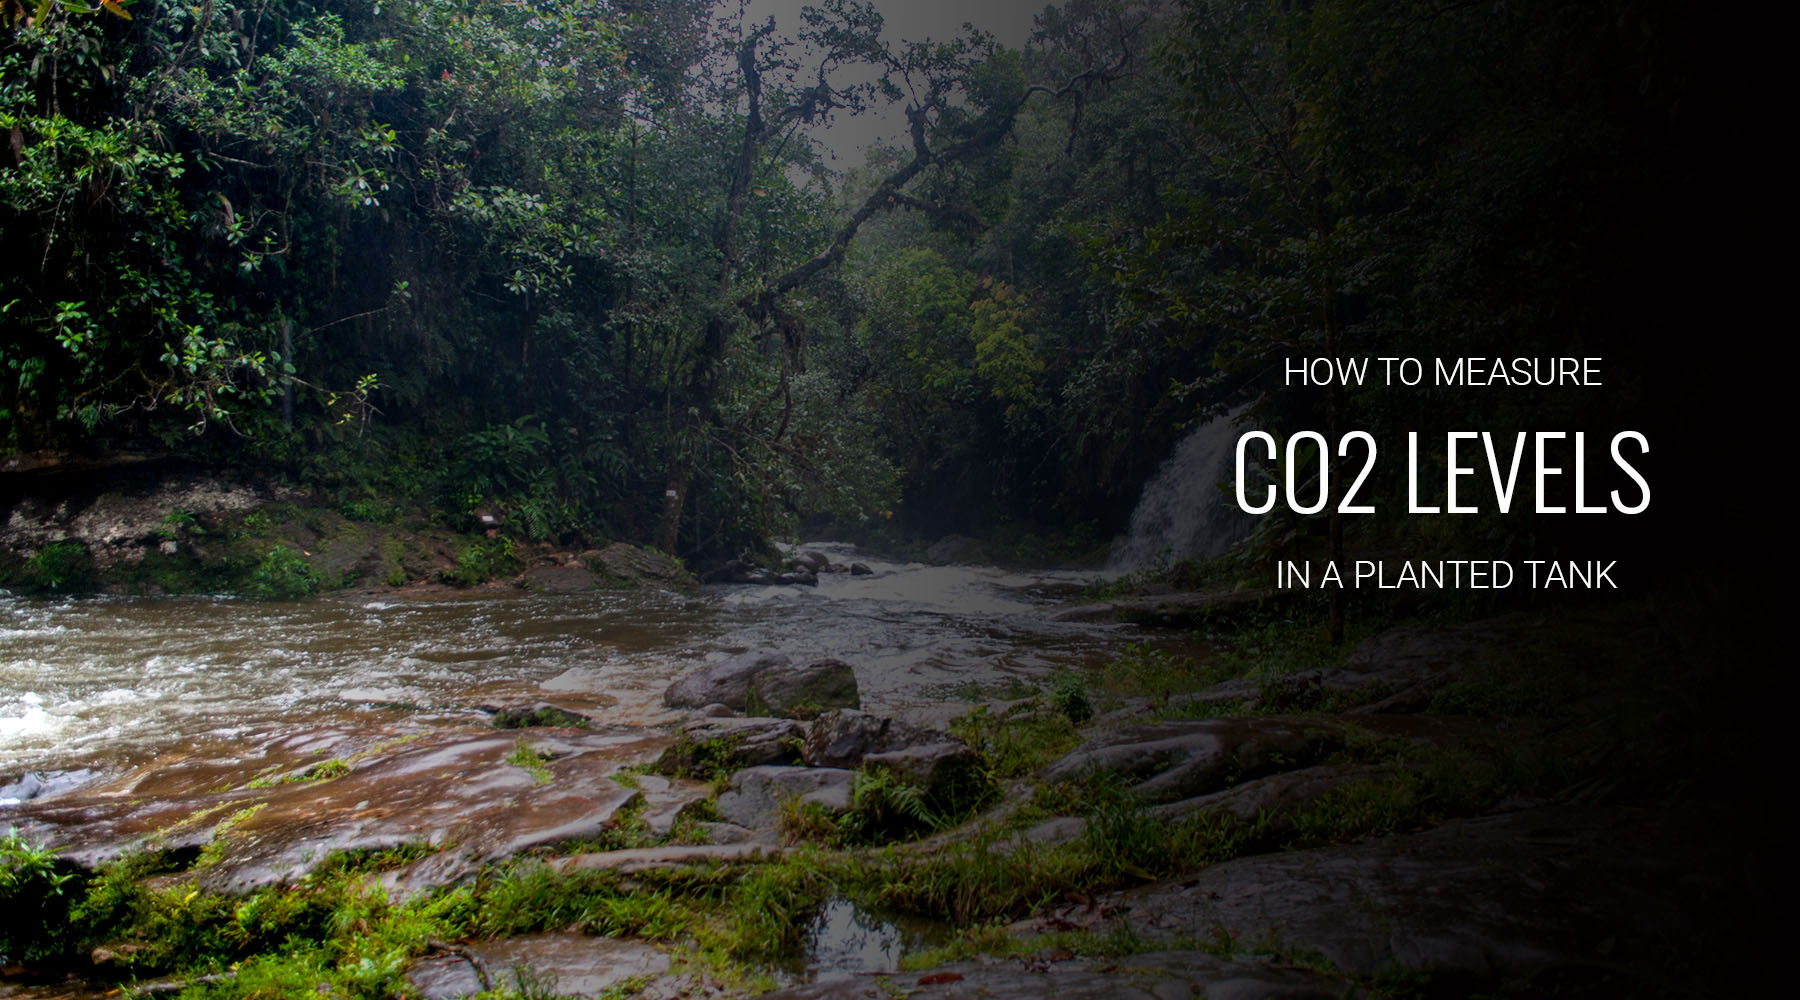 How to measure CO2 levels in an aquarium